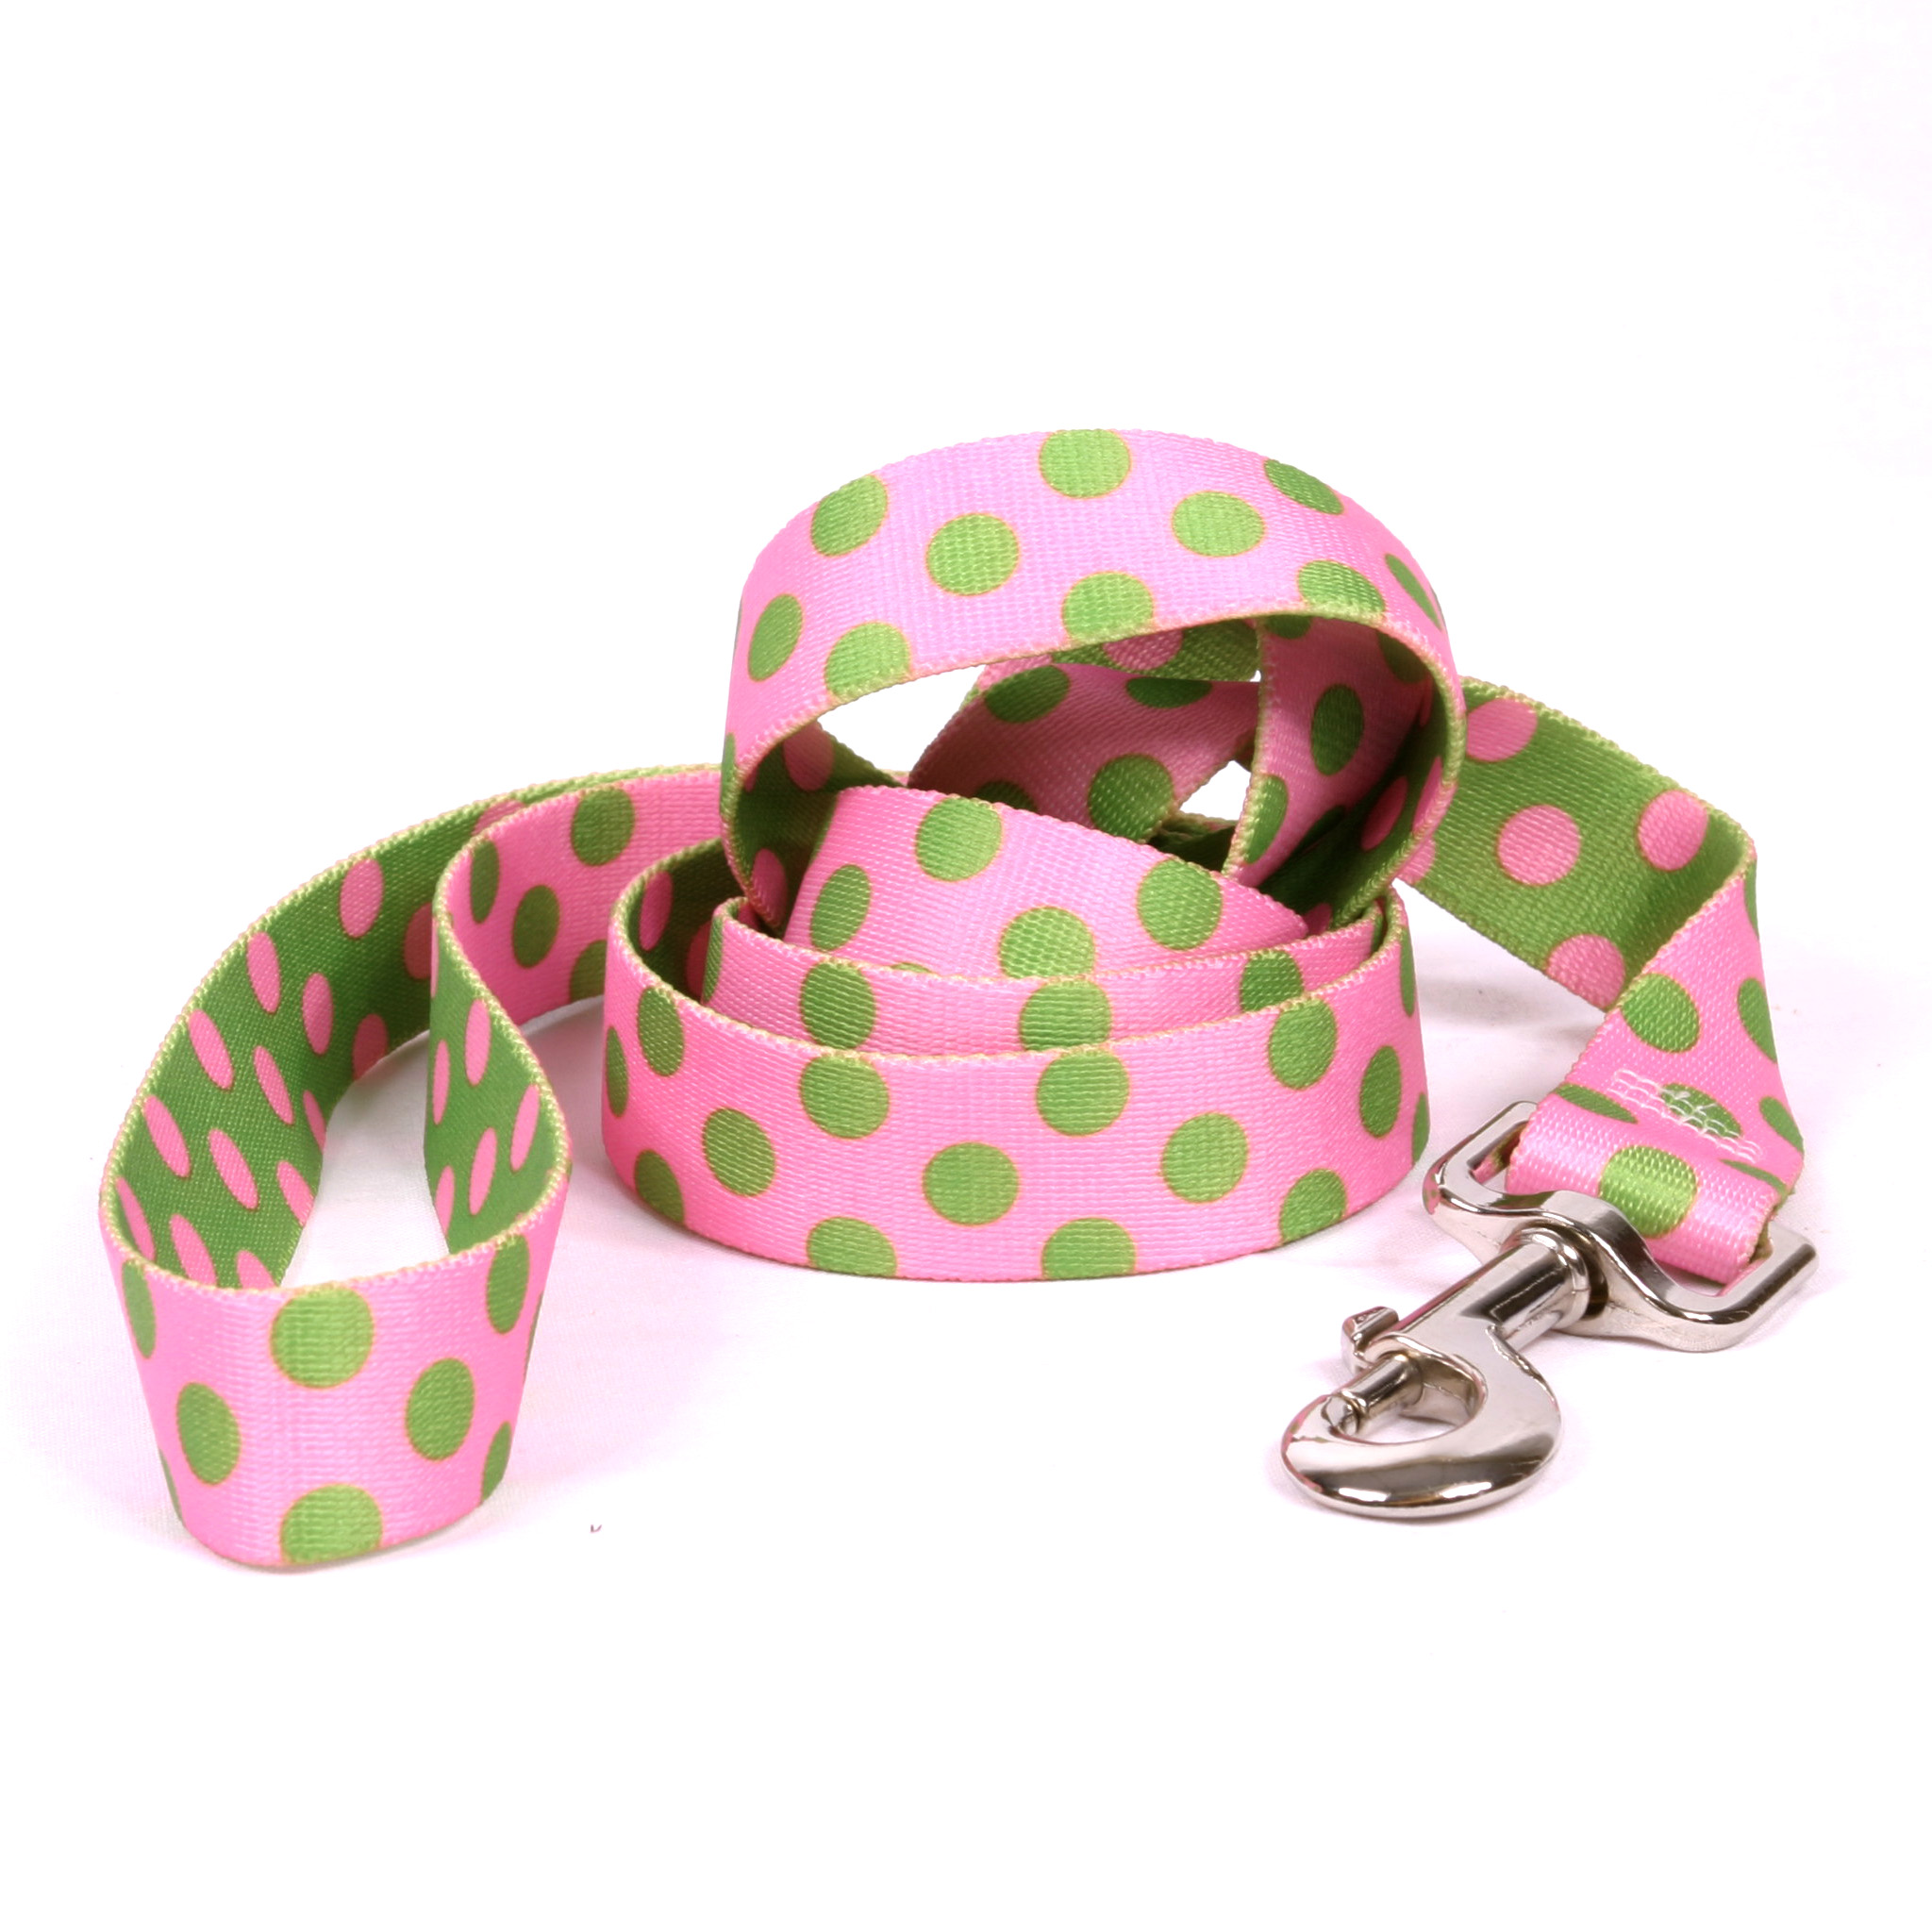 Pink and Green Polka Dot Lead